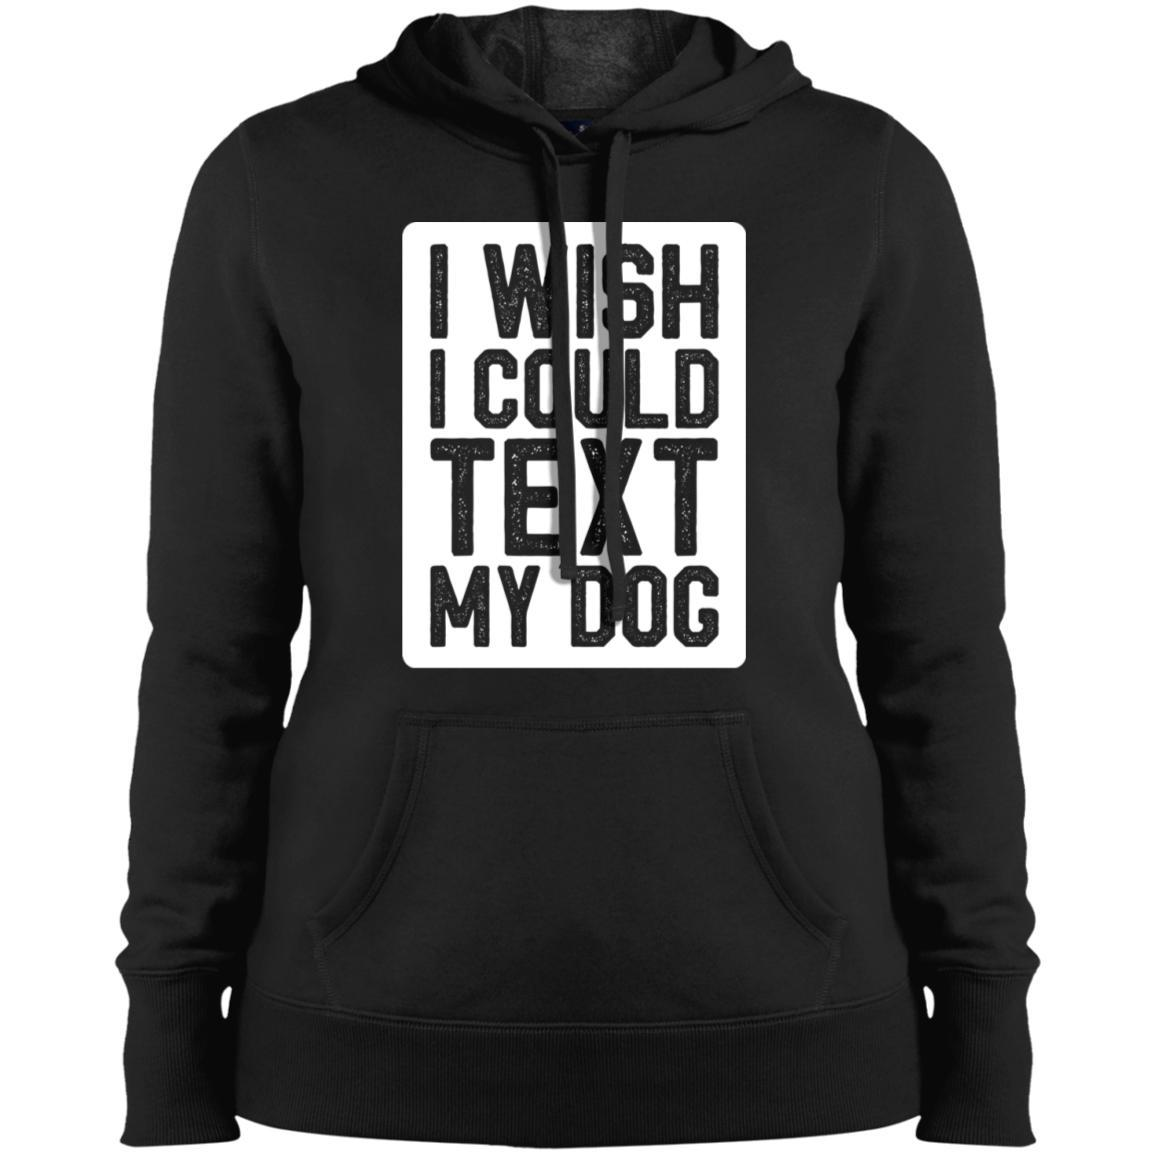 I Wish I Could Text My Dog Hoodie For Women - Ohmyglad